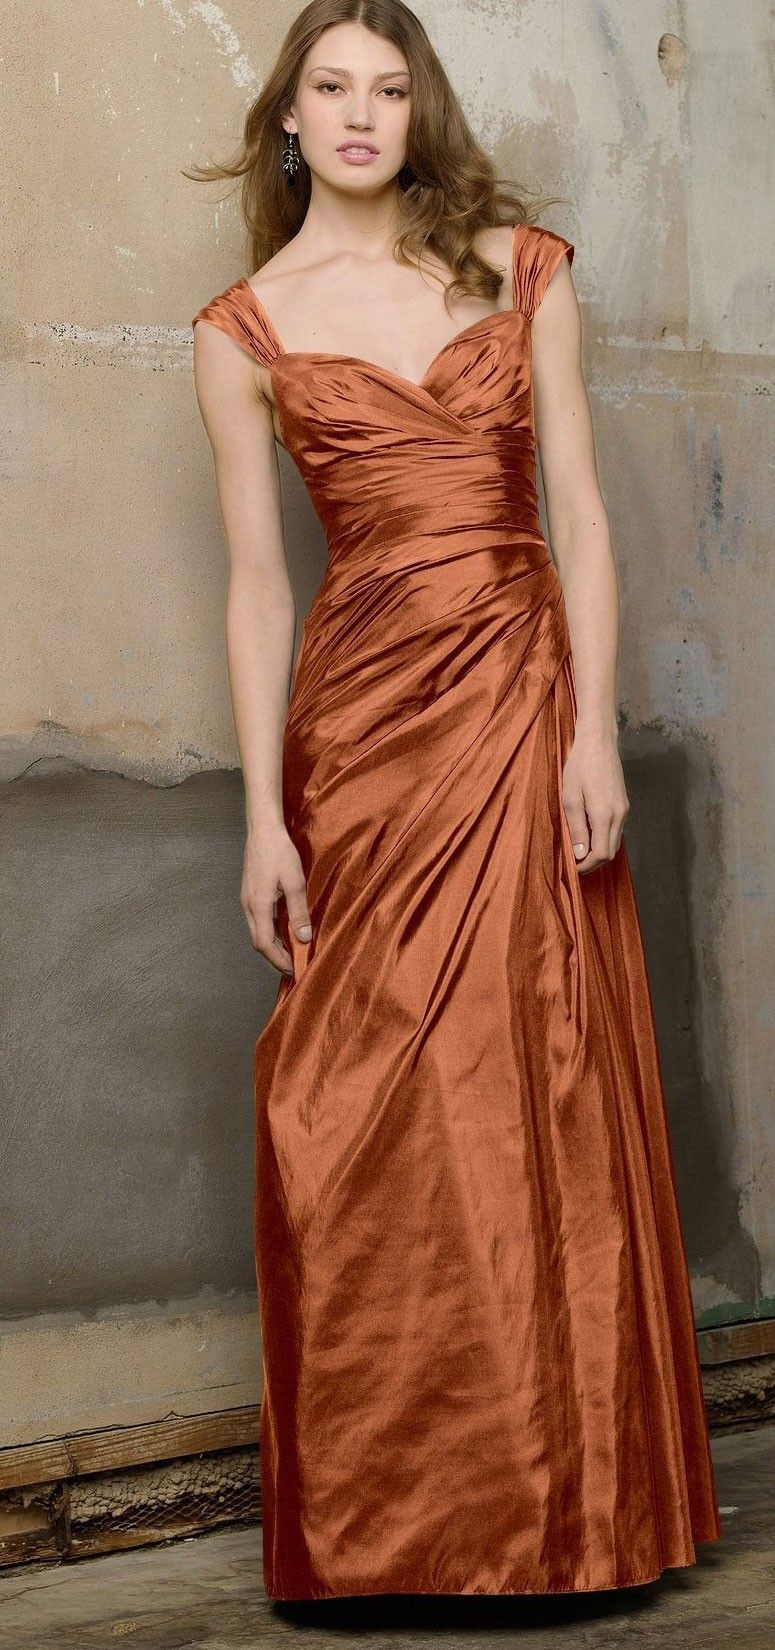 Copper dress copper golds pinterest copper dress wedding copper bridesmaid dress i might like the color ideaar would probably ombrellifo Images